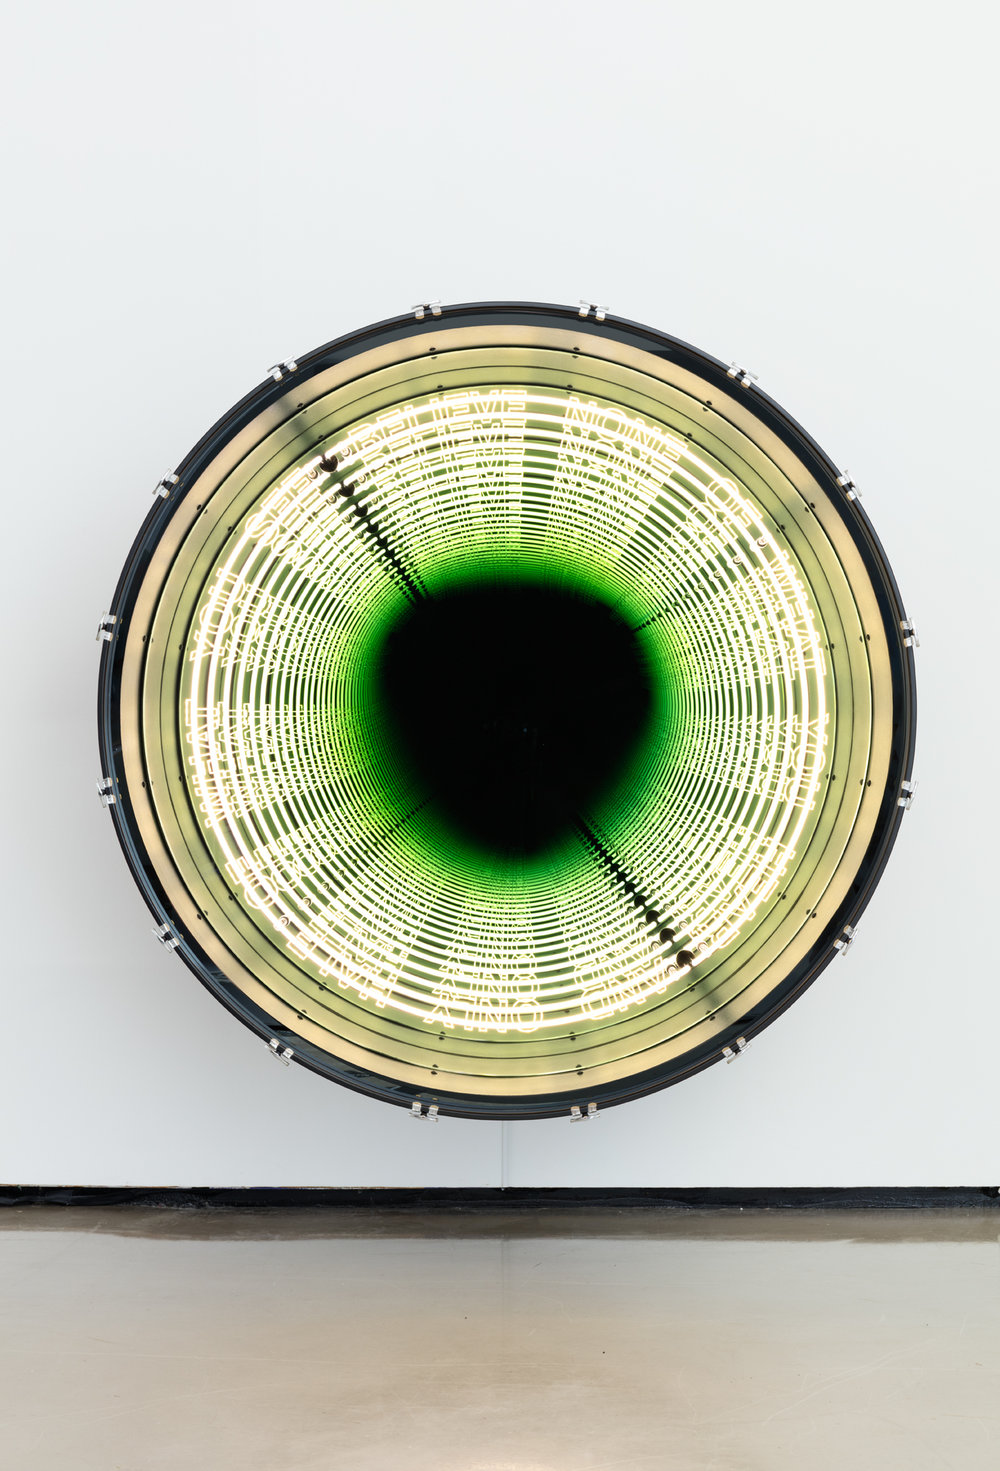 Iván Navarro, Benjamin Franklin, 2016 Paul Kasmin Gallery  neon, LED lights, aluminum, drum, mirror, one-way mirror, and electric energy 152.4 × 152.4 × 71.8 Size (cm)